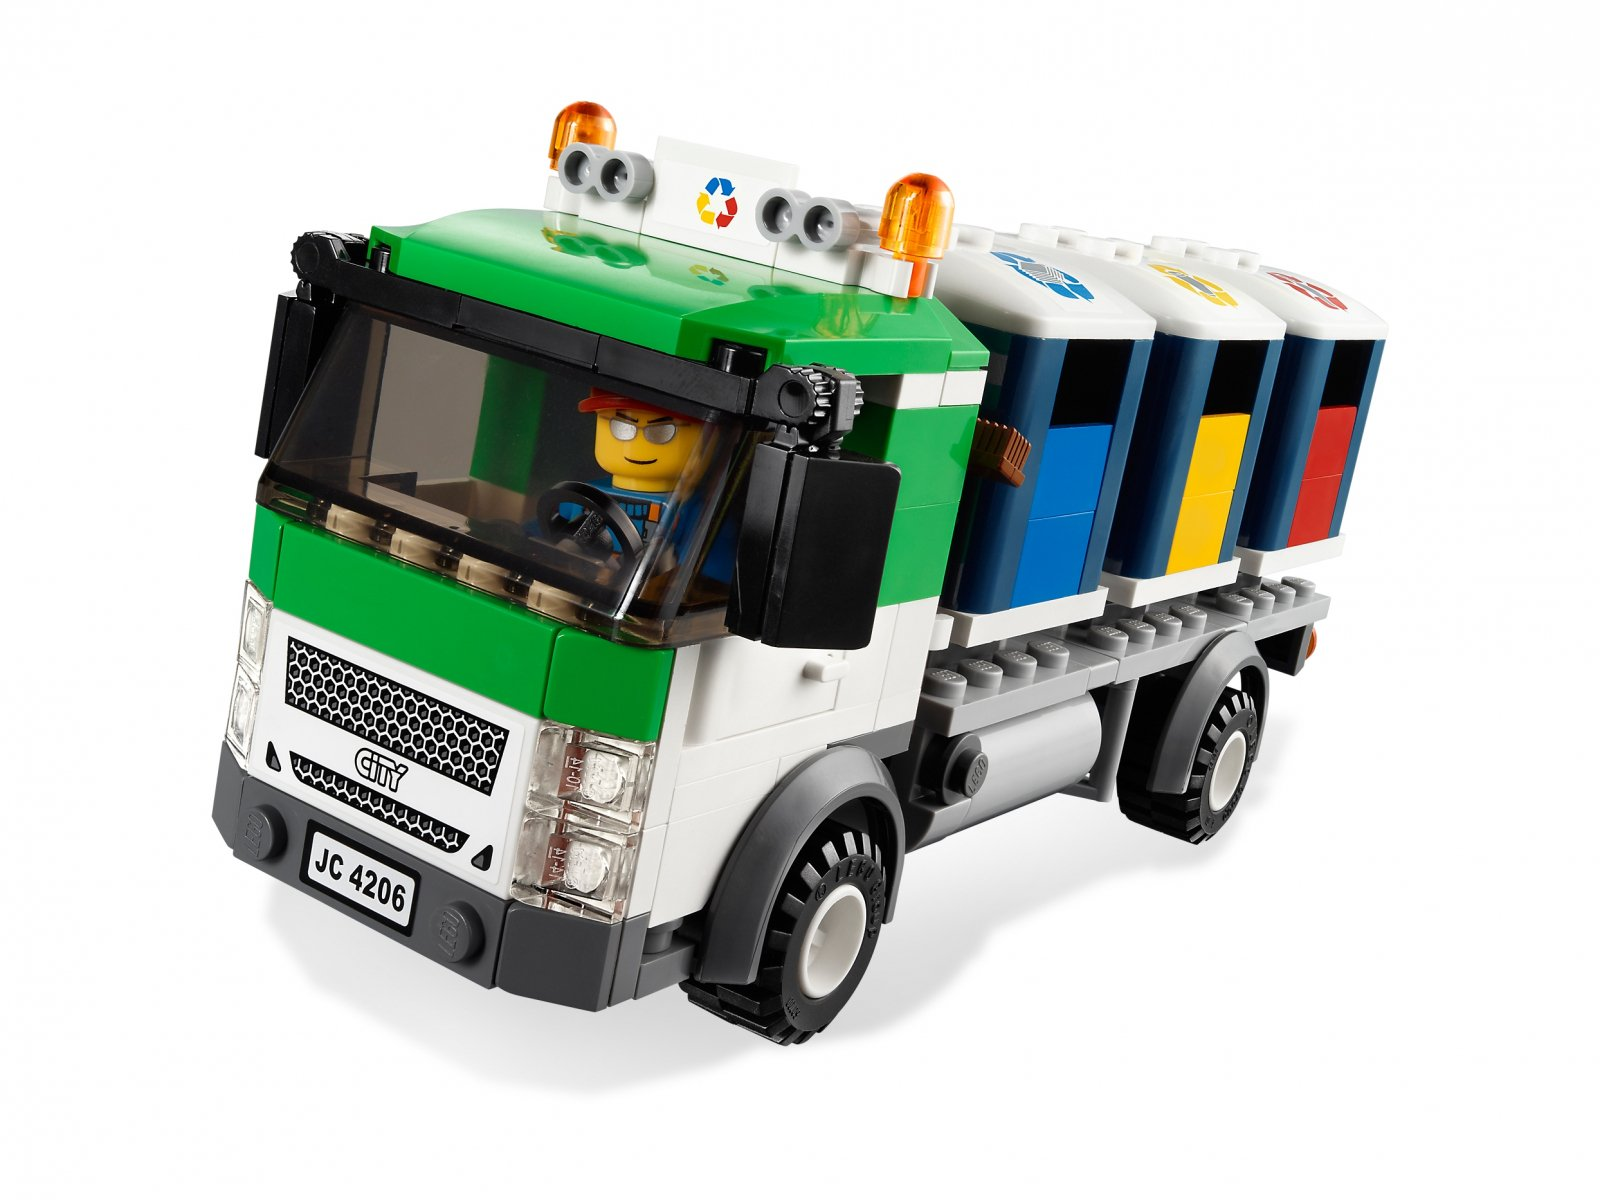 LEGO City Recycling Truck 4206